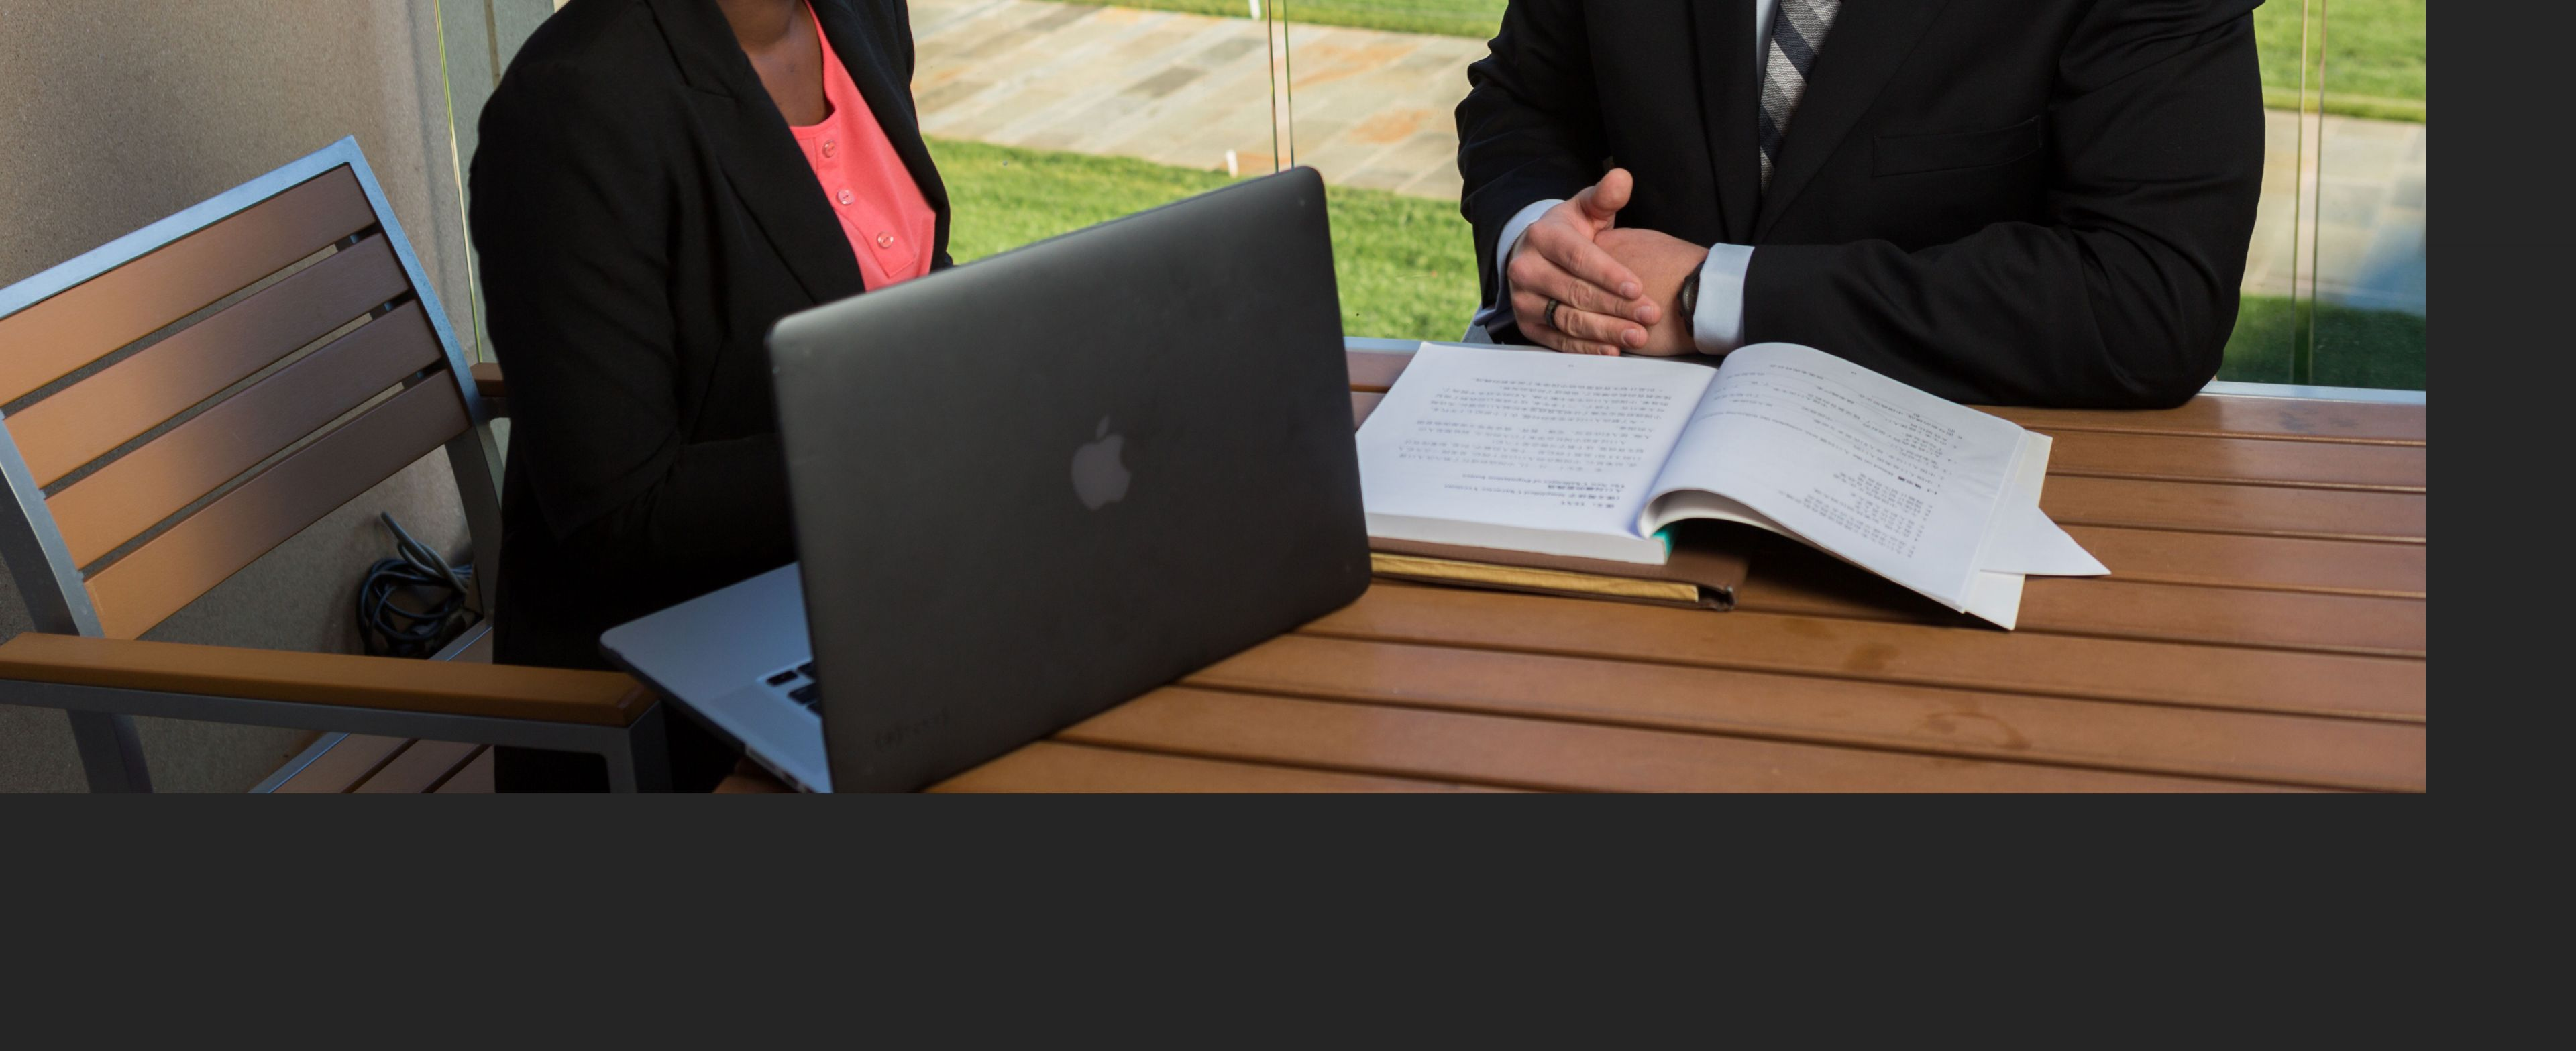 Bachelor's Degree in Accounting Online Program